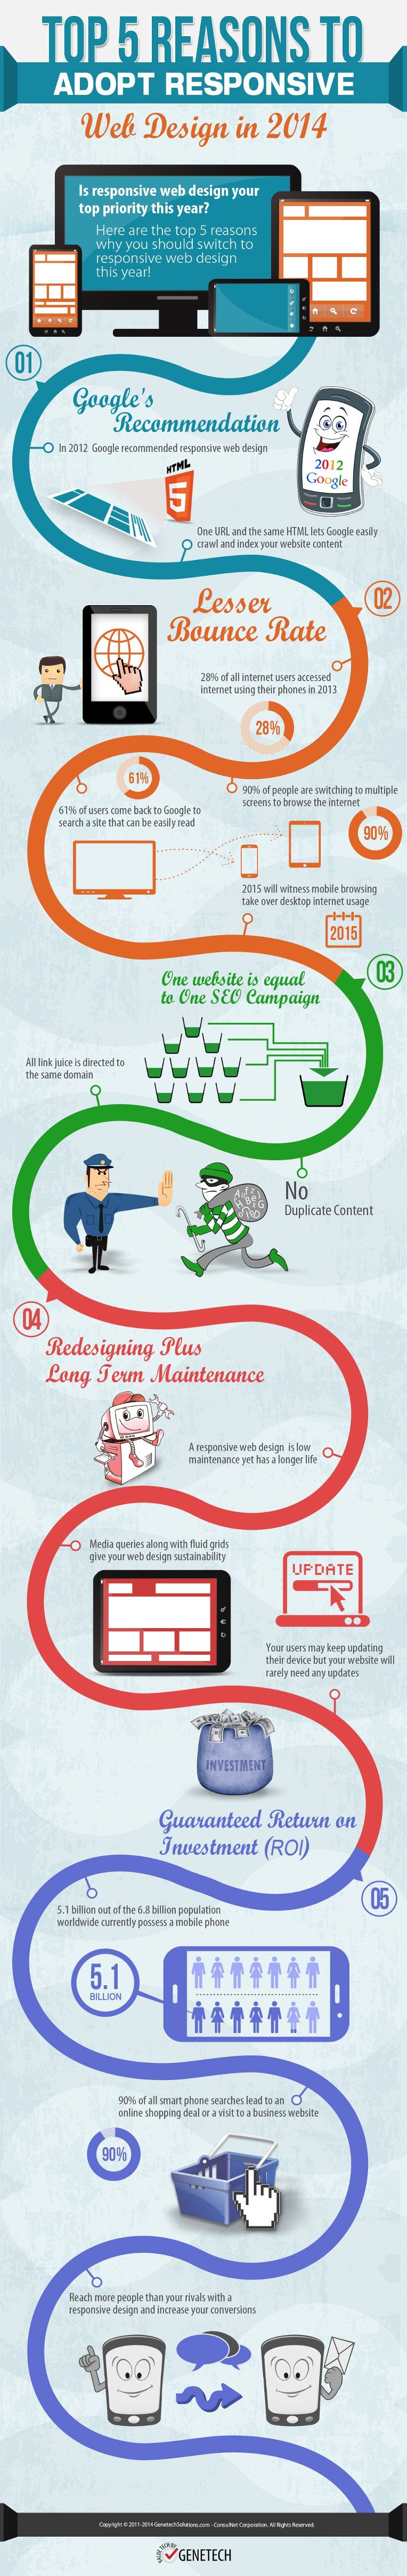 Top 5 Reasons to Adopt Responsive Infographic